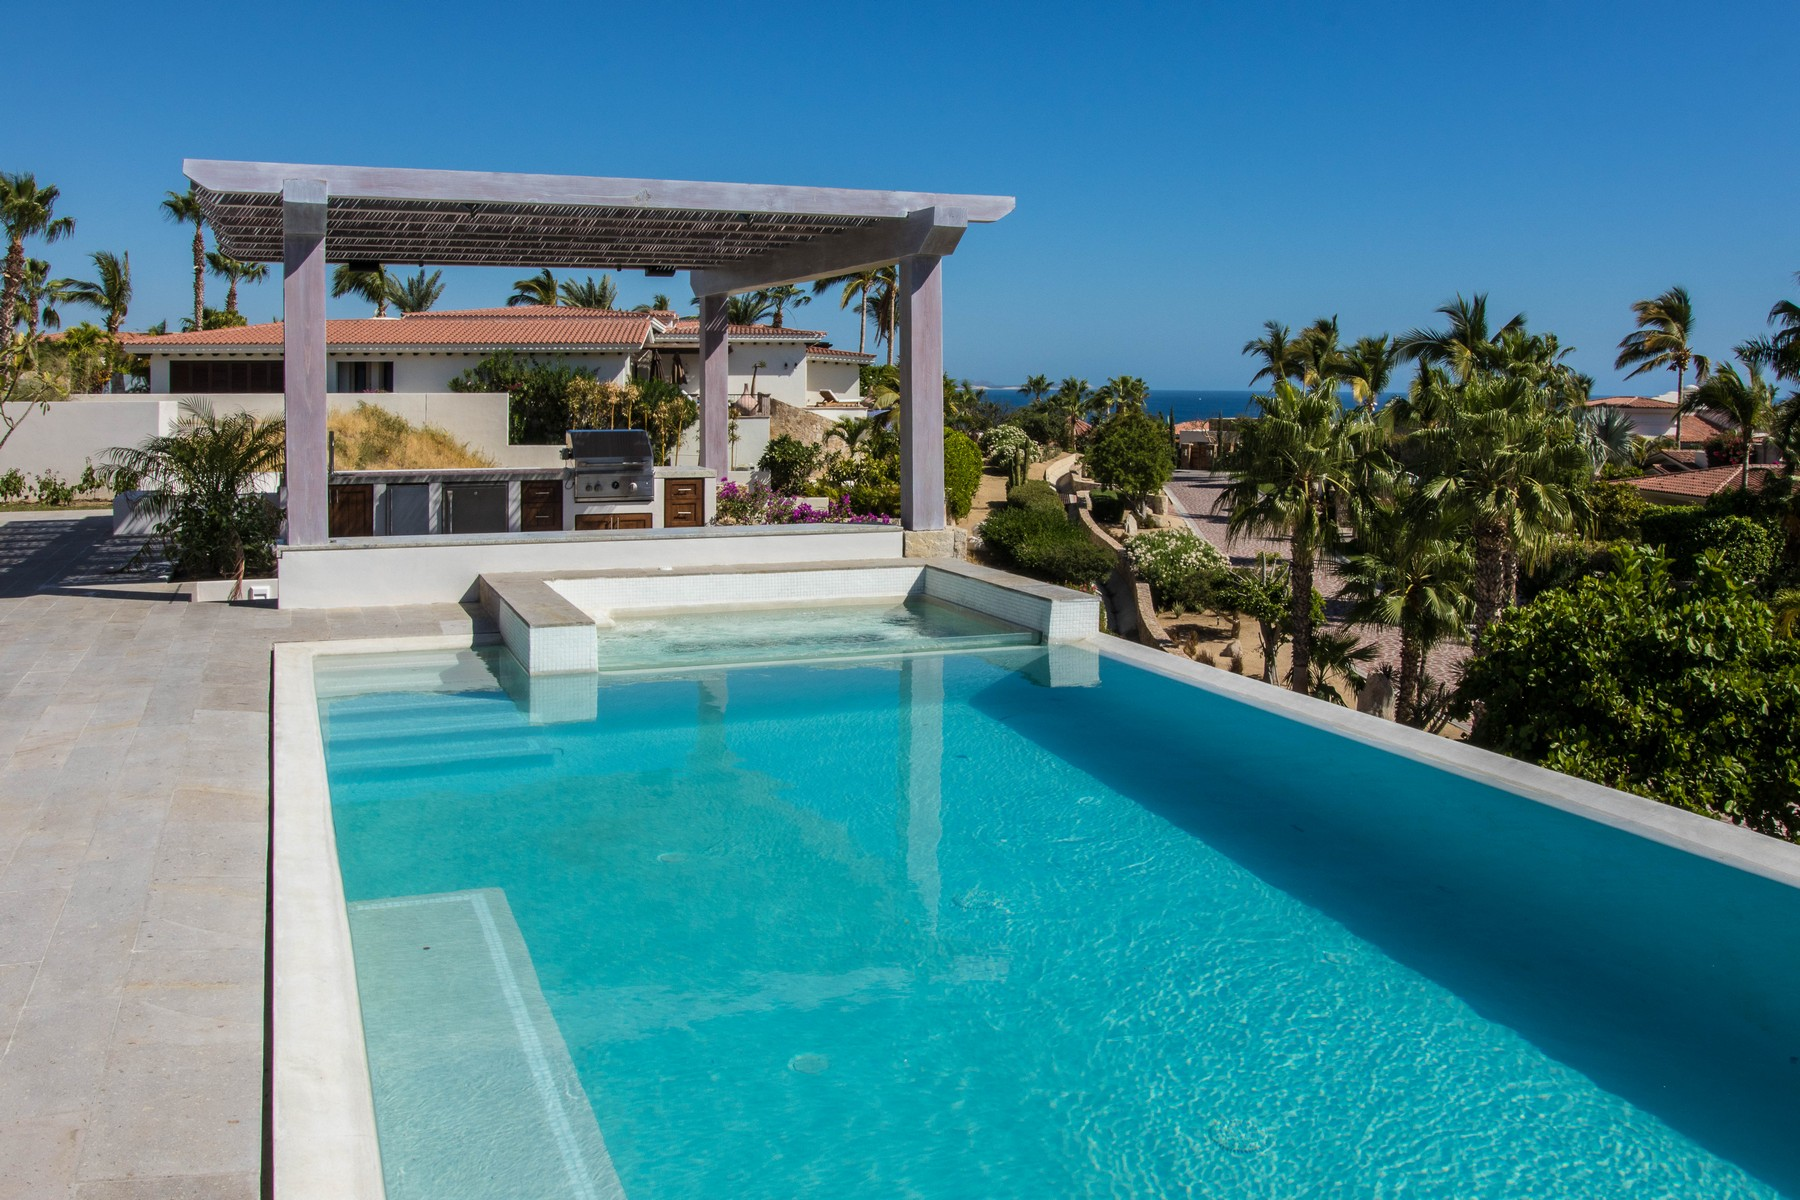 Additional photo for property listing at Casa Caleta Lote 66 Caleta Palmilla San Jose Del Cabo, Baja California Sur 23400 Mexico